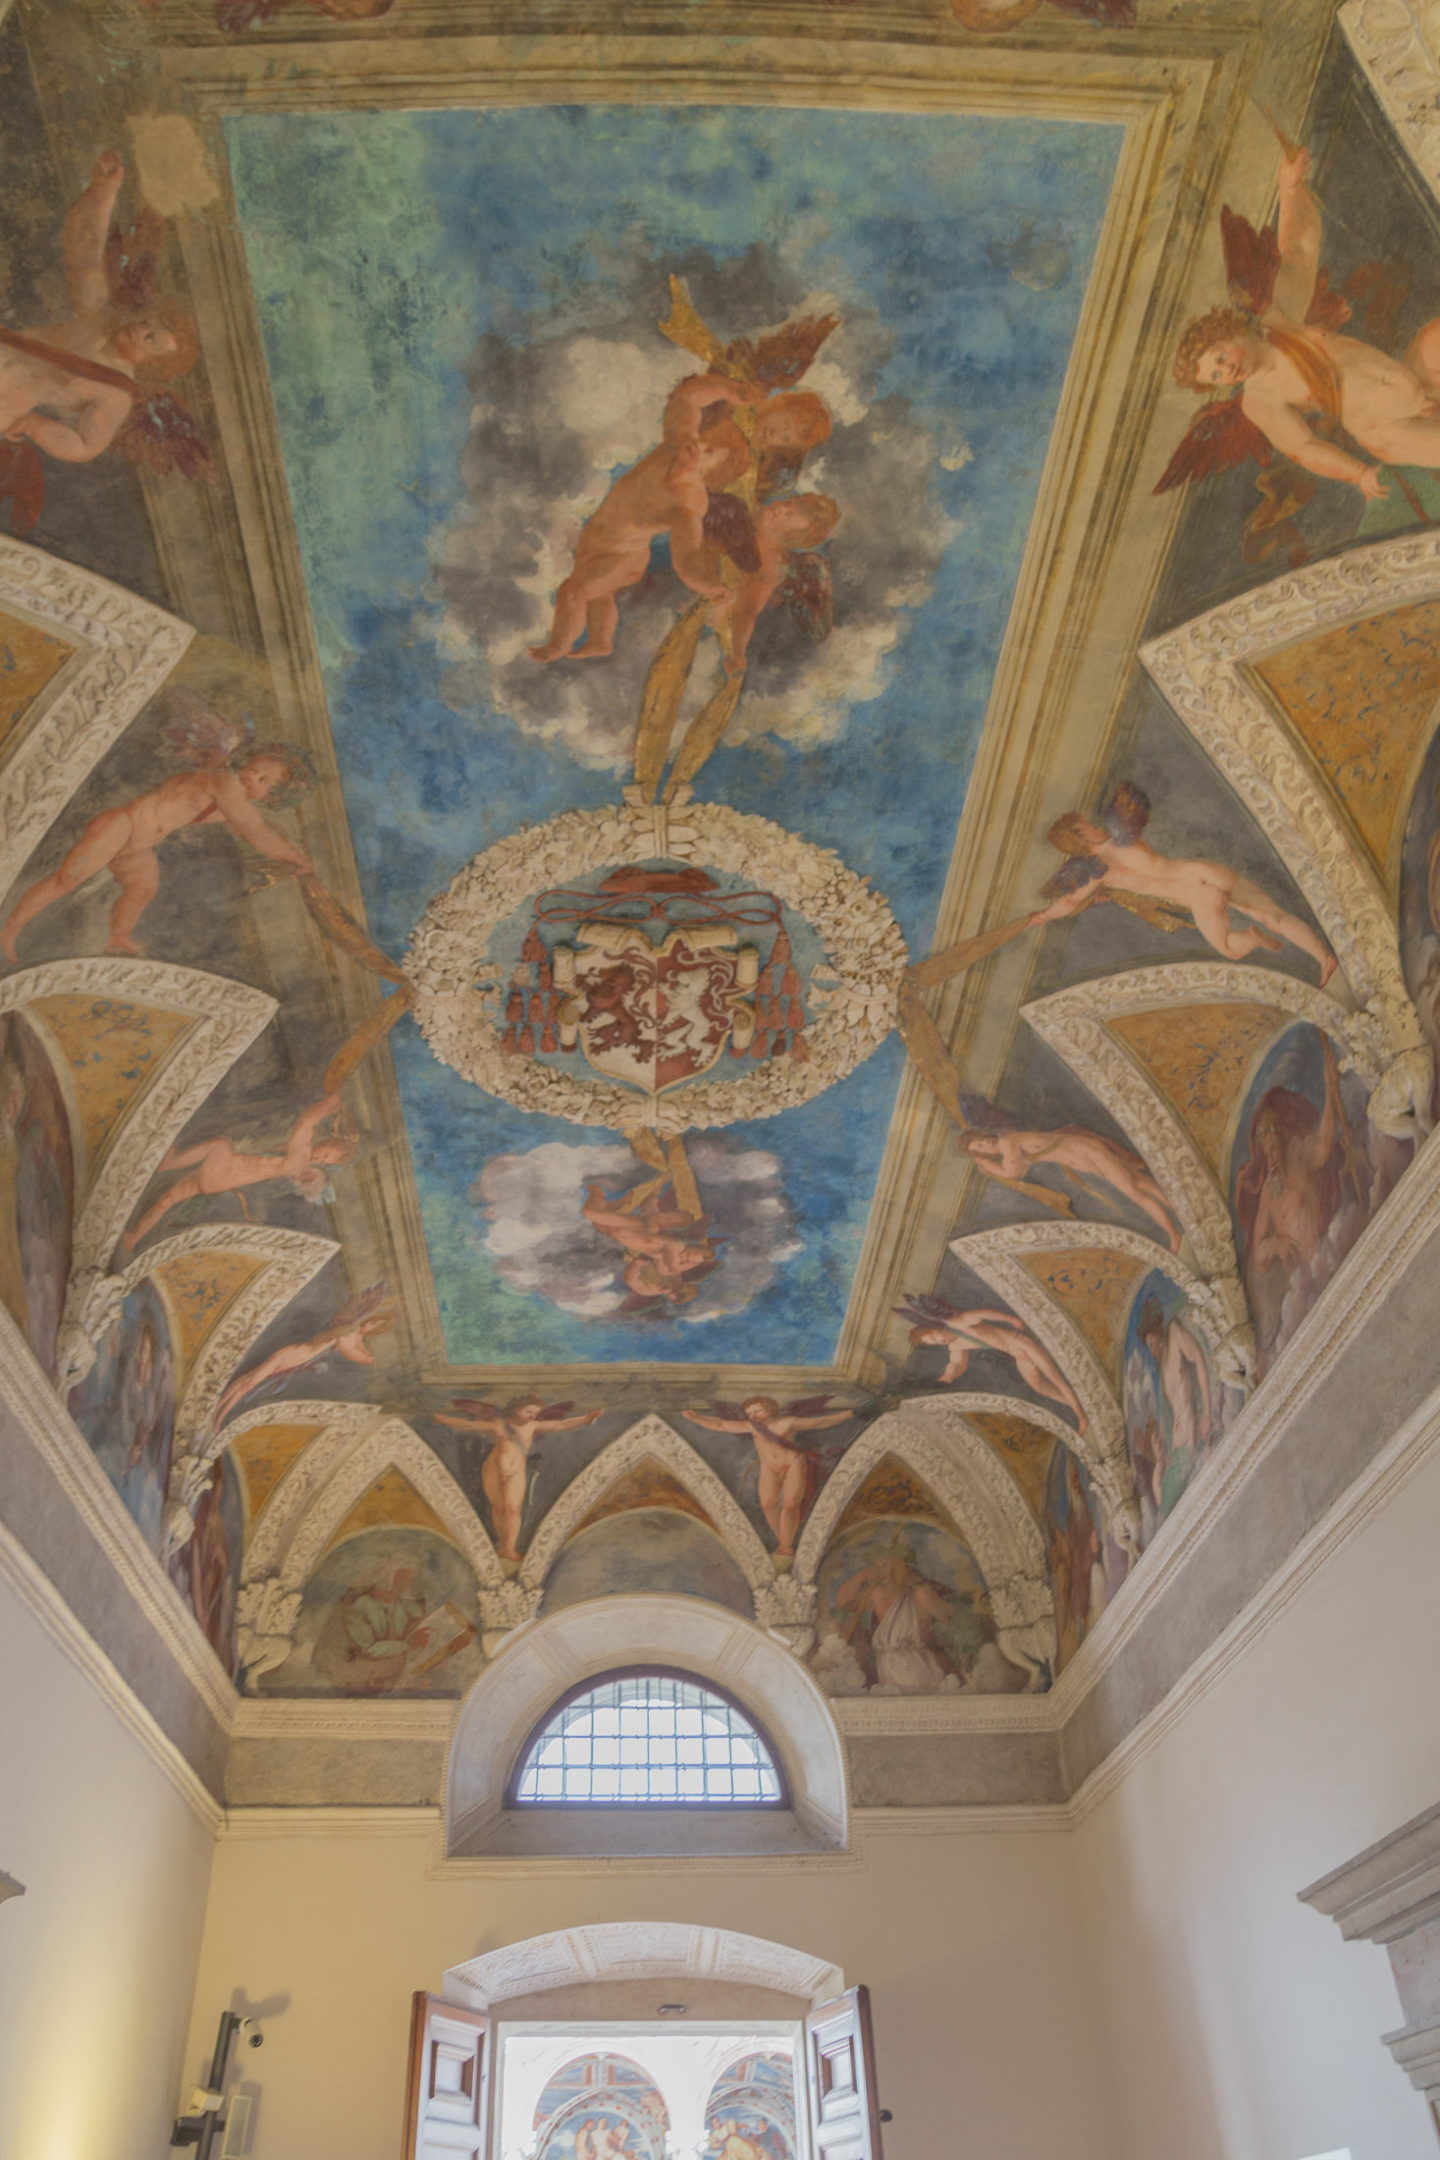 painted ceiling in trento castle